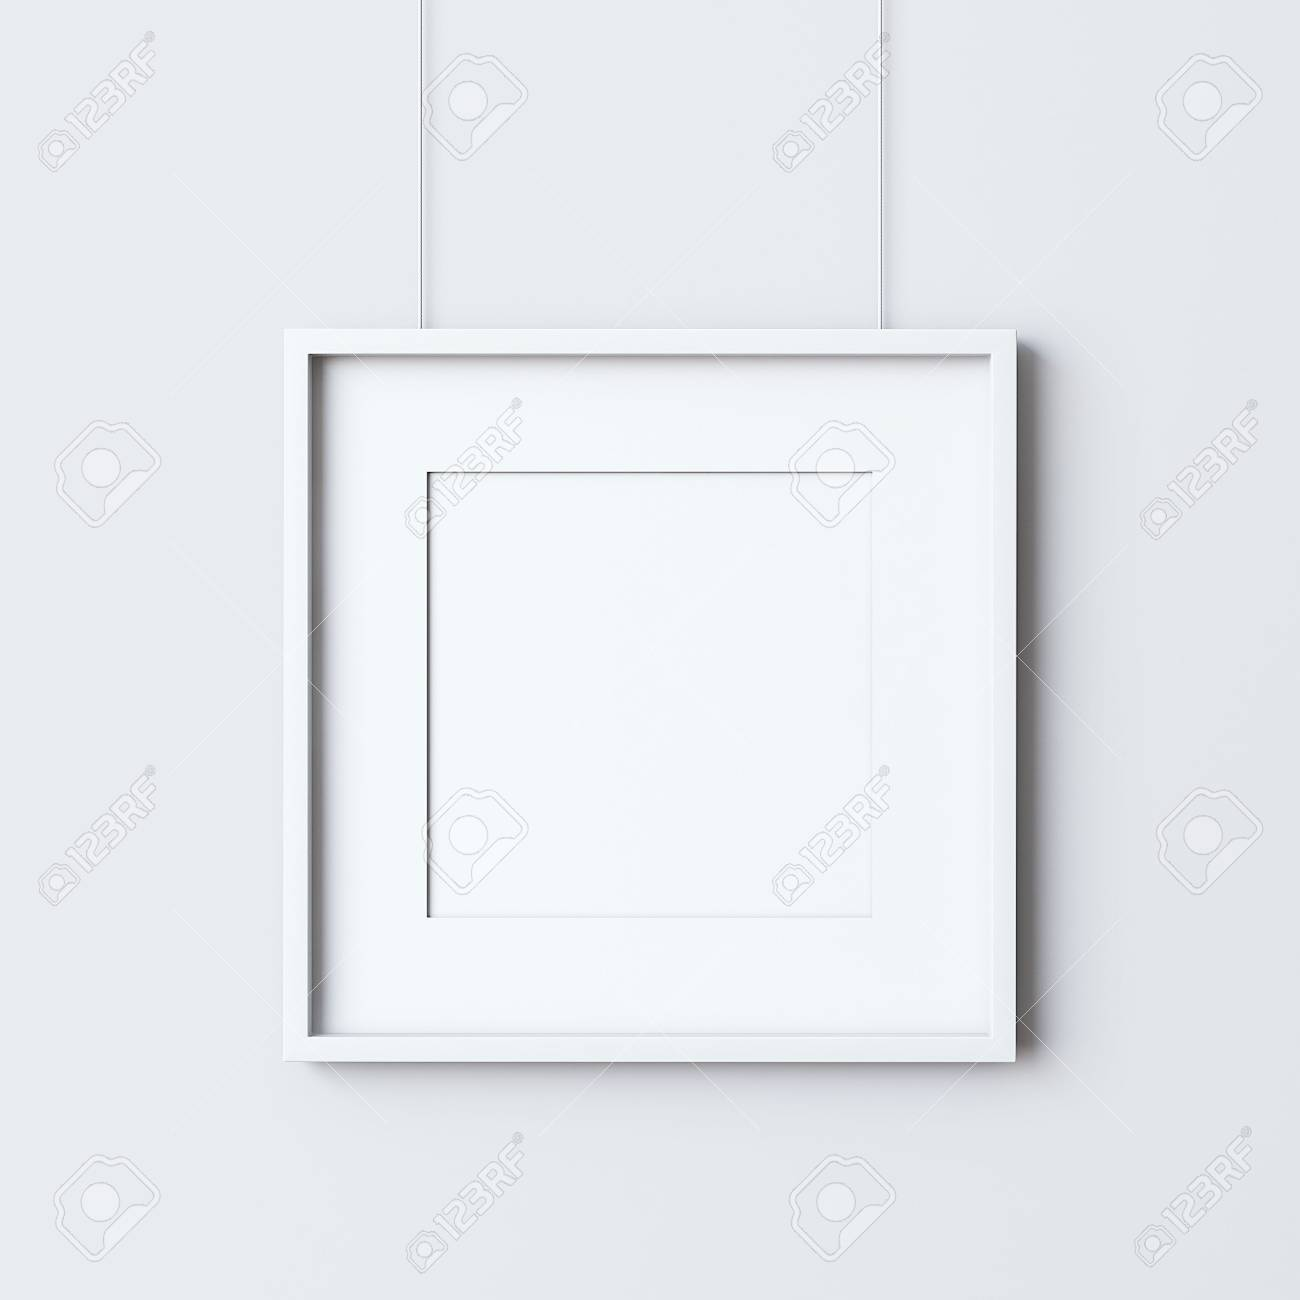 Empty Square Frame Hanging On The White Wall Stock Photo, Picture ...